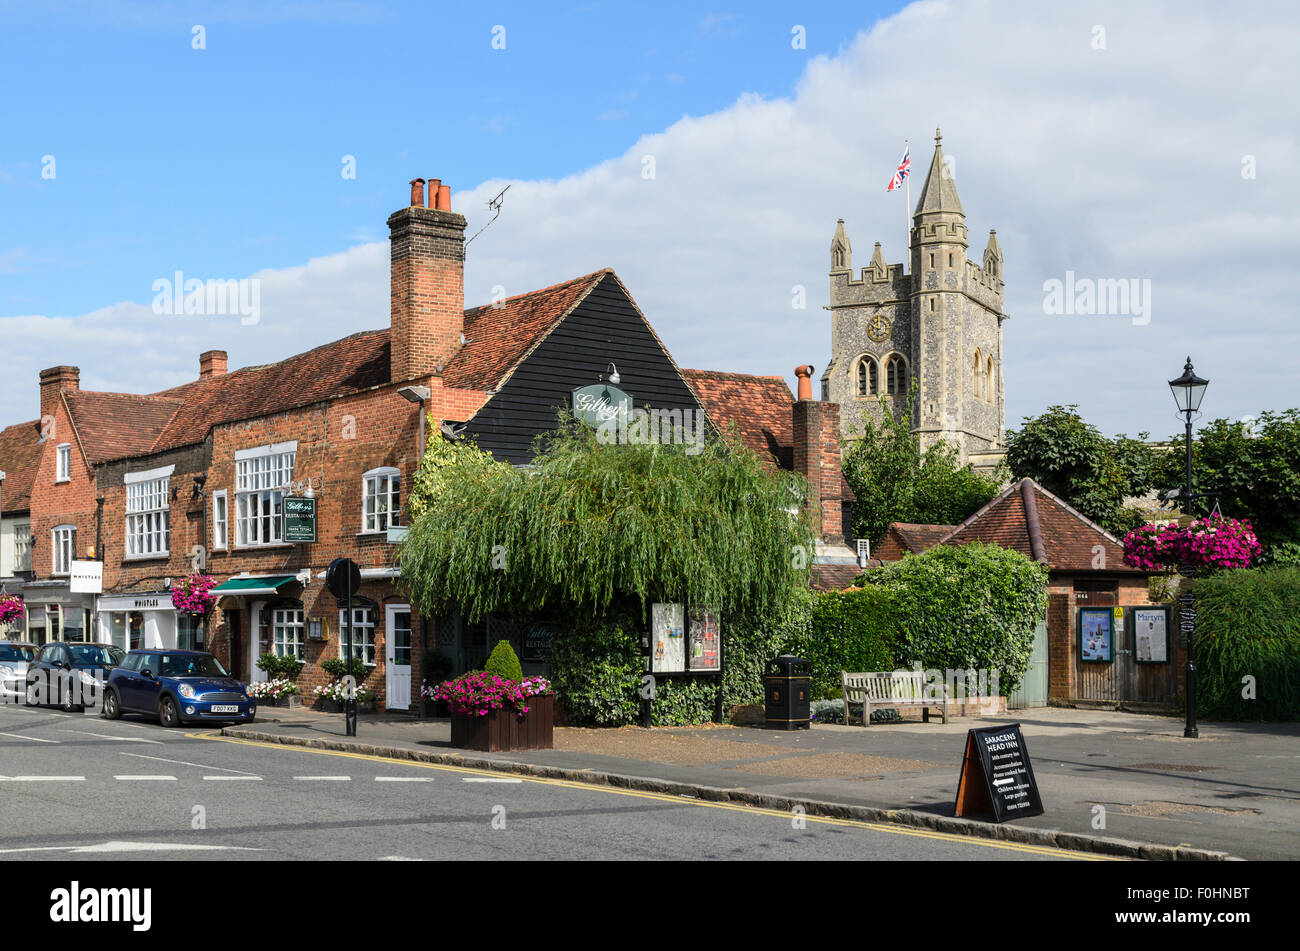 A view of Old Amersham with St Marys Church in the background. Old Amersham, Buckinghamshire, England, UK - Stock Image